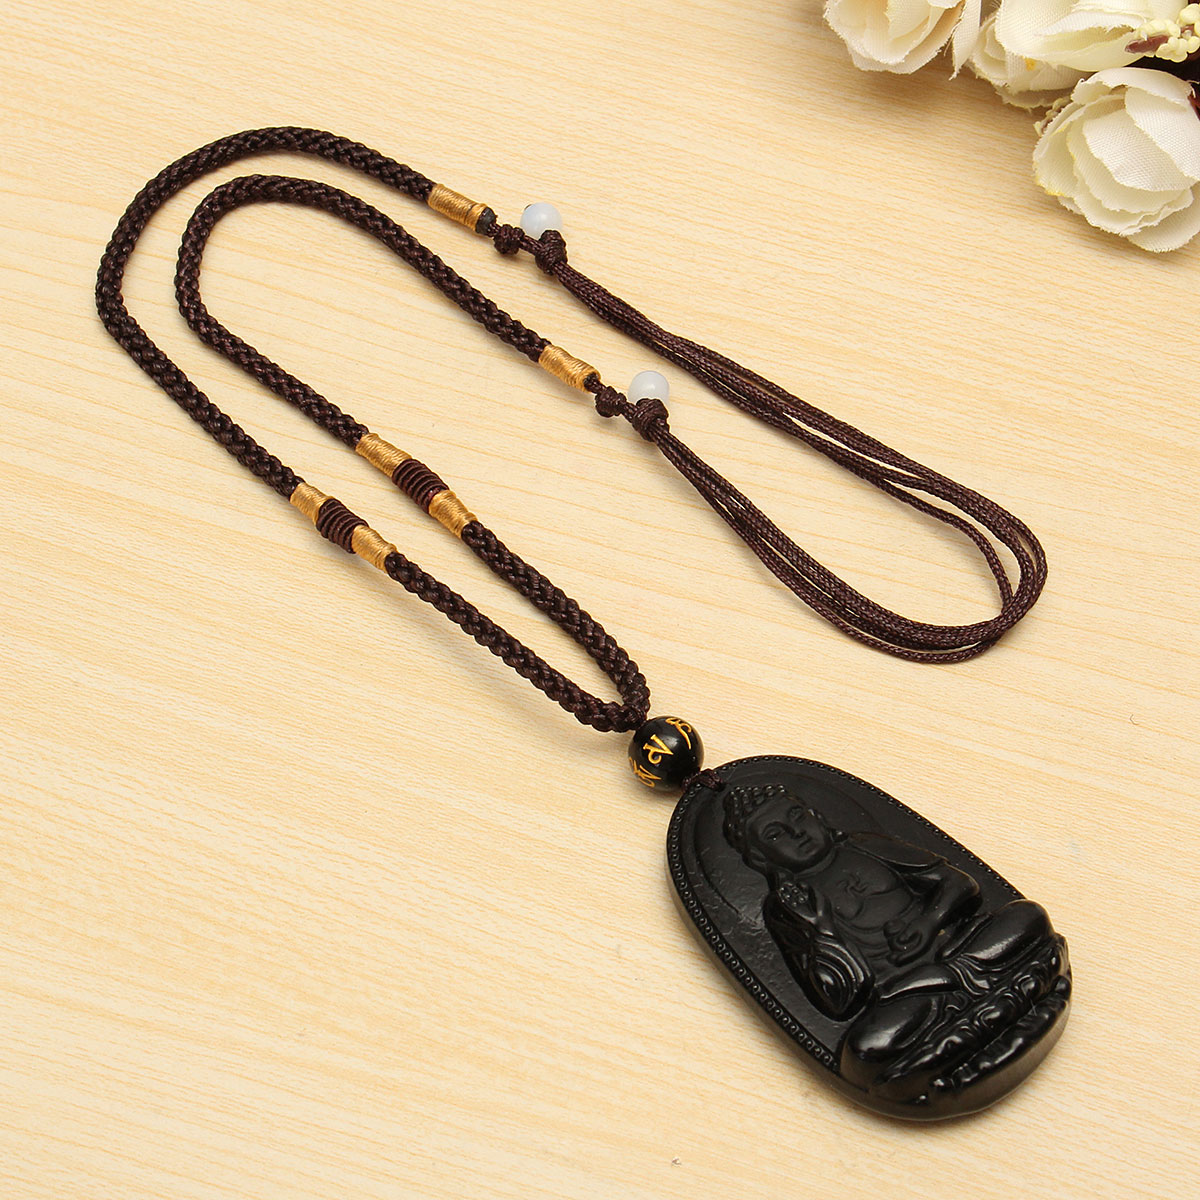 Chinese Obsidian Carved Buddha Pendant Necklace Jewelry